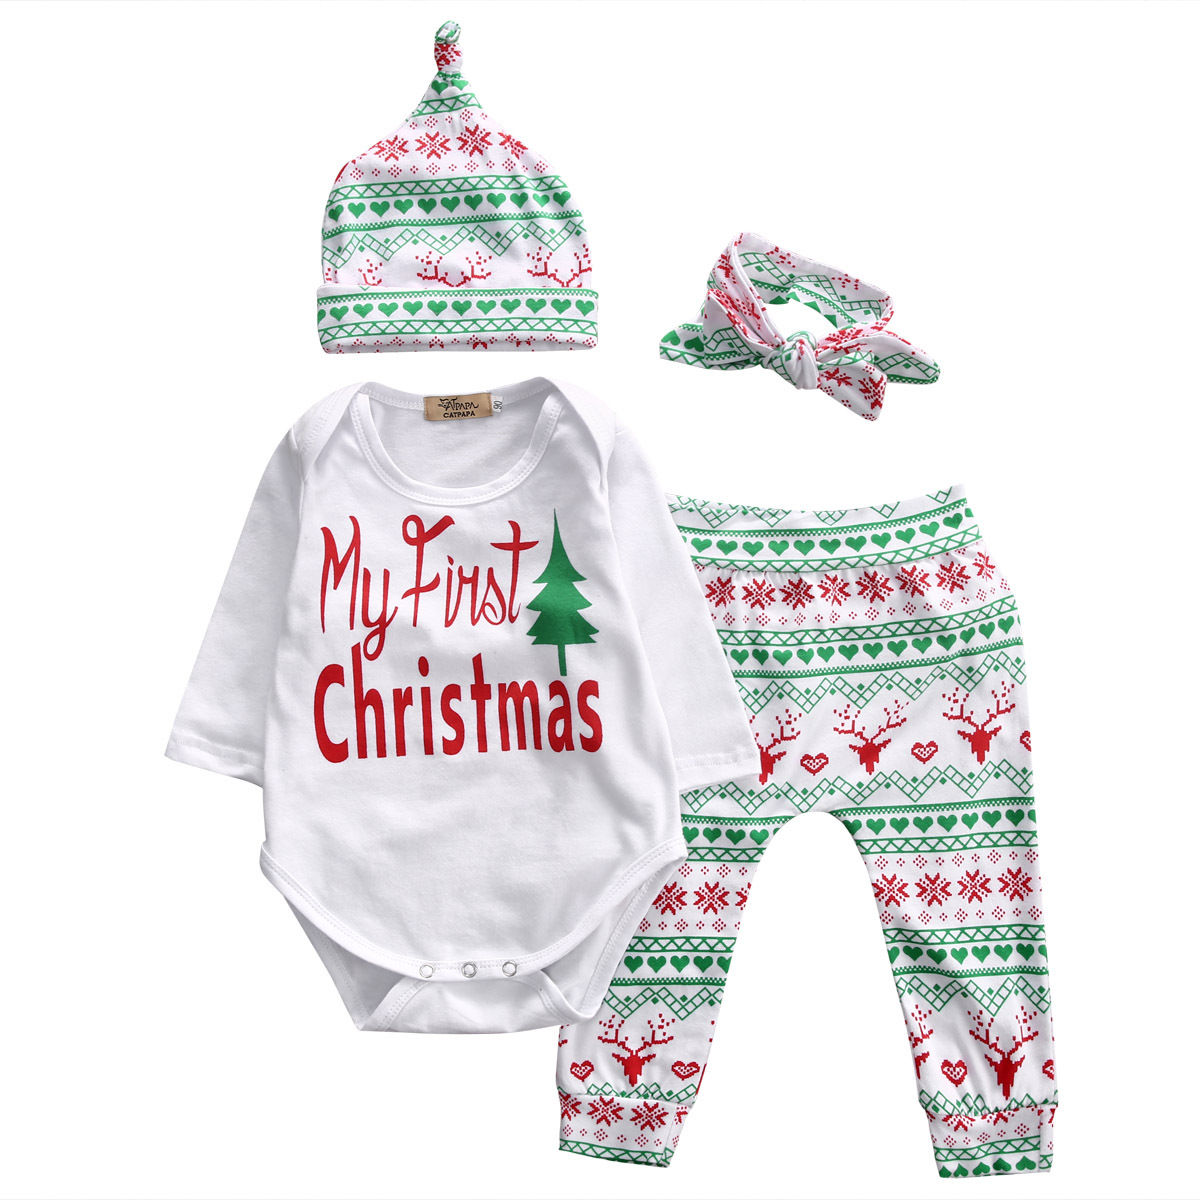 Boys Romper Pants Casual Cute Leggings Girls Clothing 4PCS Set Christmas Infant Baby Boy Girl Clothes Tops Outfits Garments Kids 2pcs set baby clothes set boy